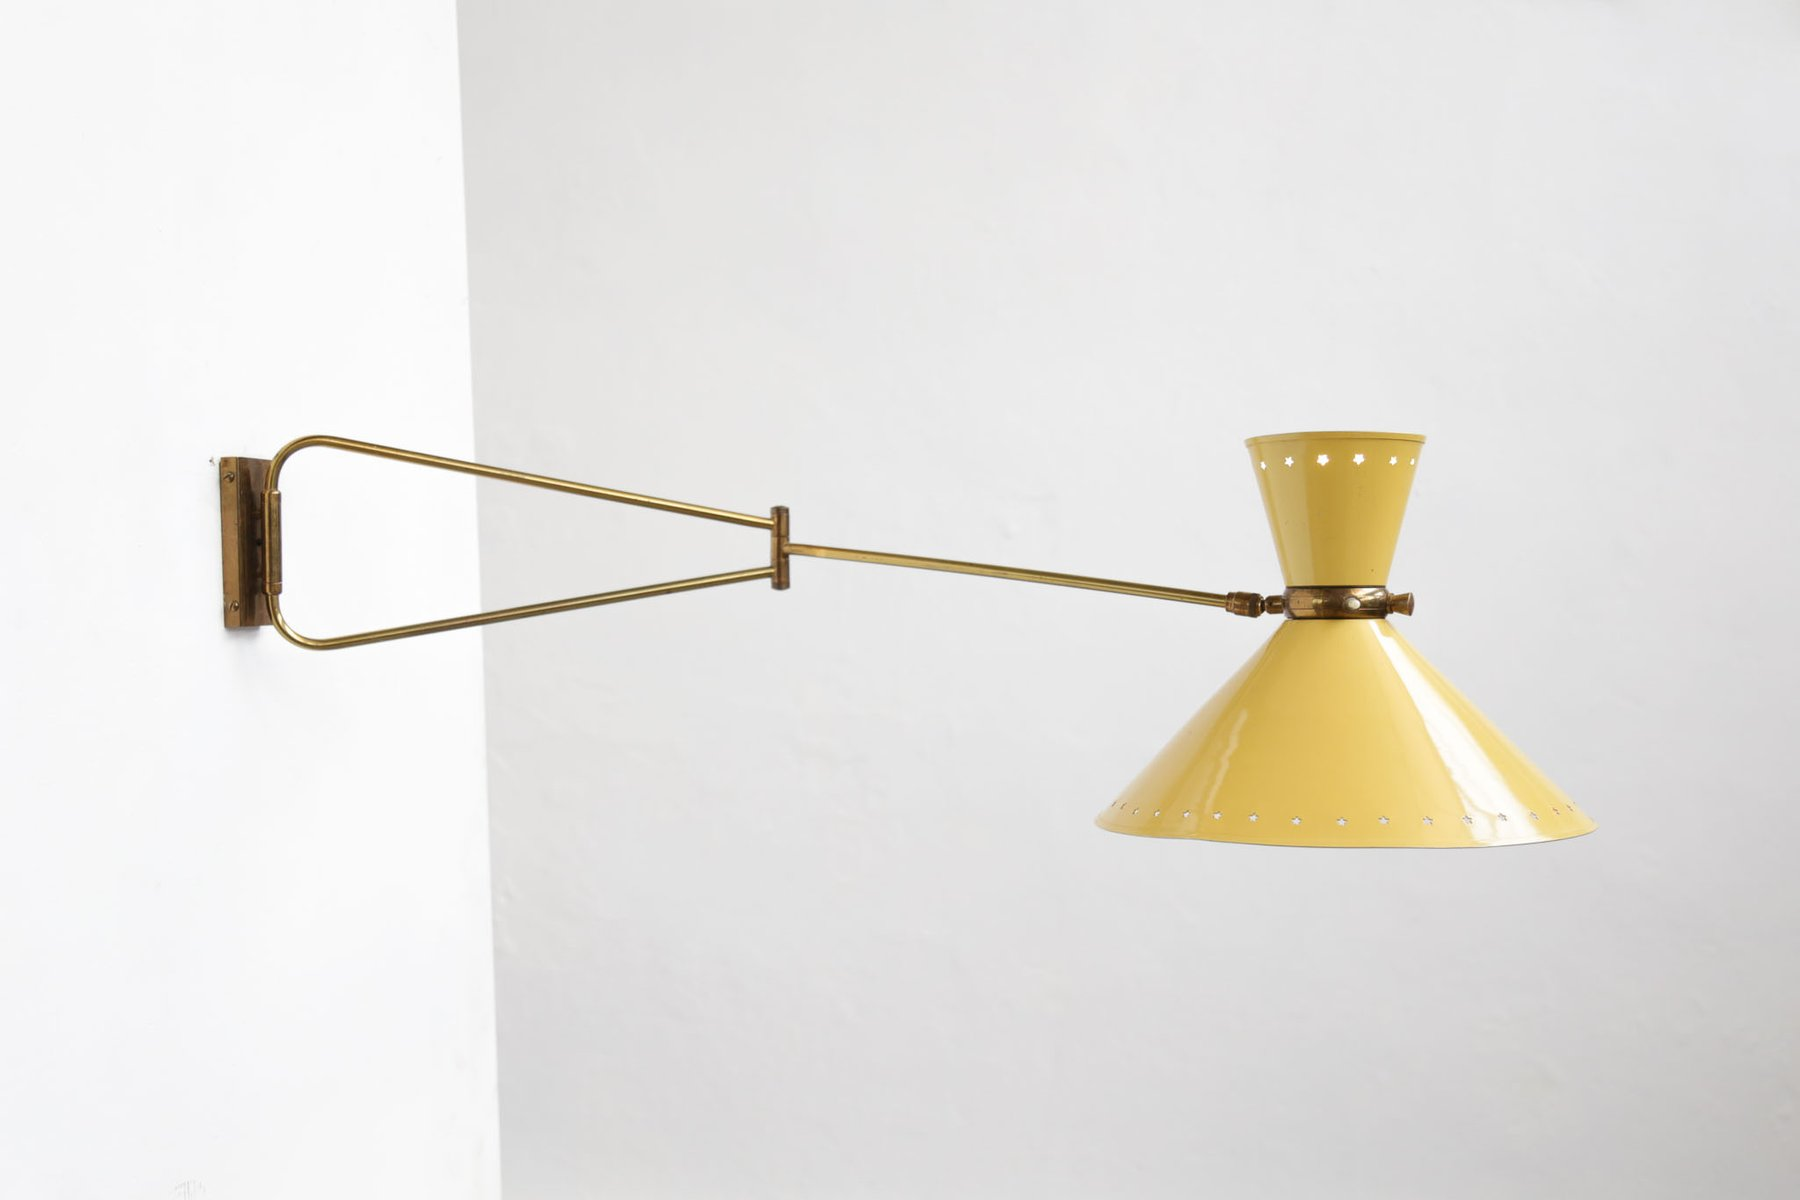 Lampe Vintage Cool Affordable Lampe Vintage Retro Dco Lampe With